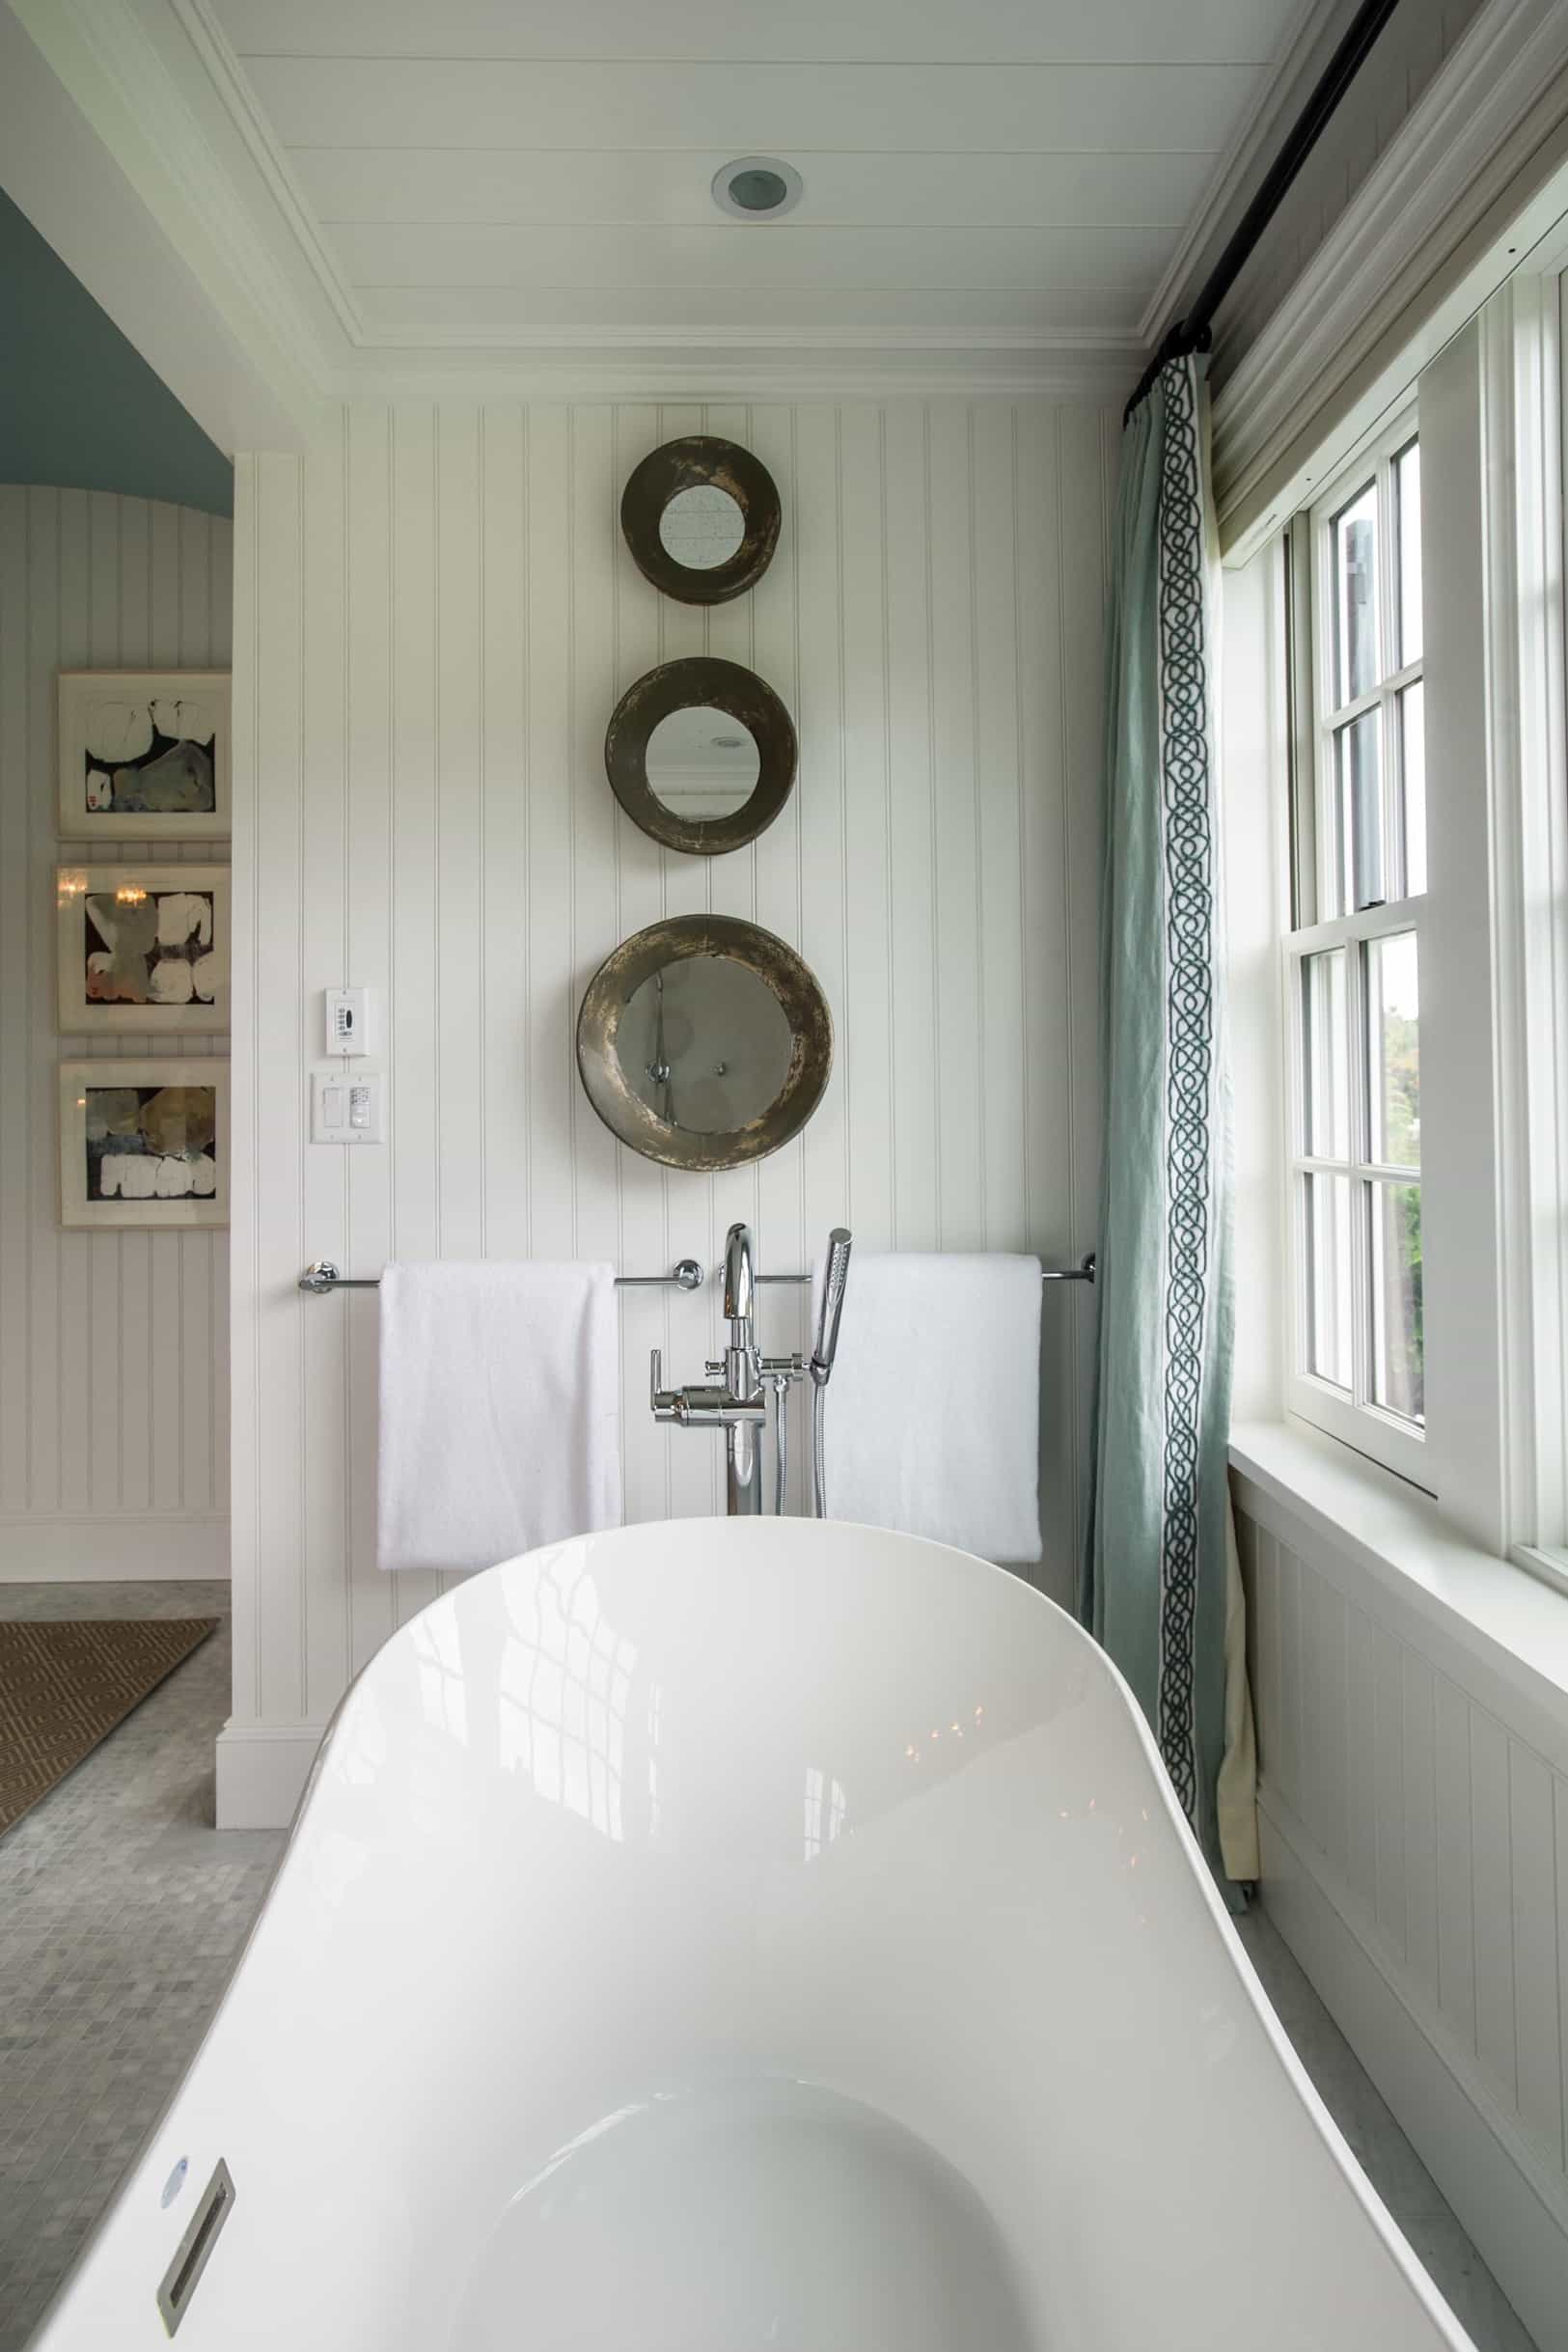 Featured Image of Country Cottage Bathroom Decor With Artistic Mirrors